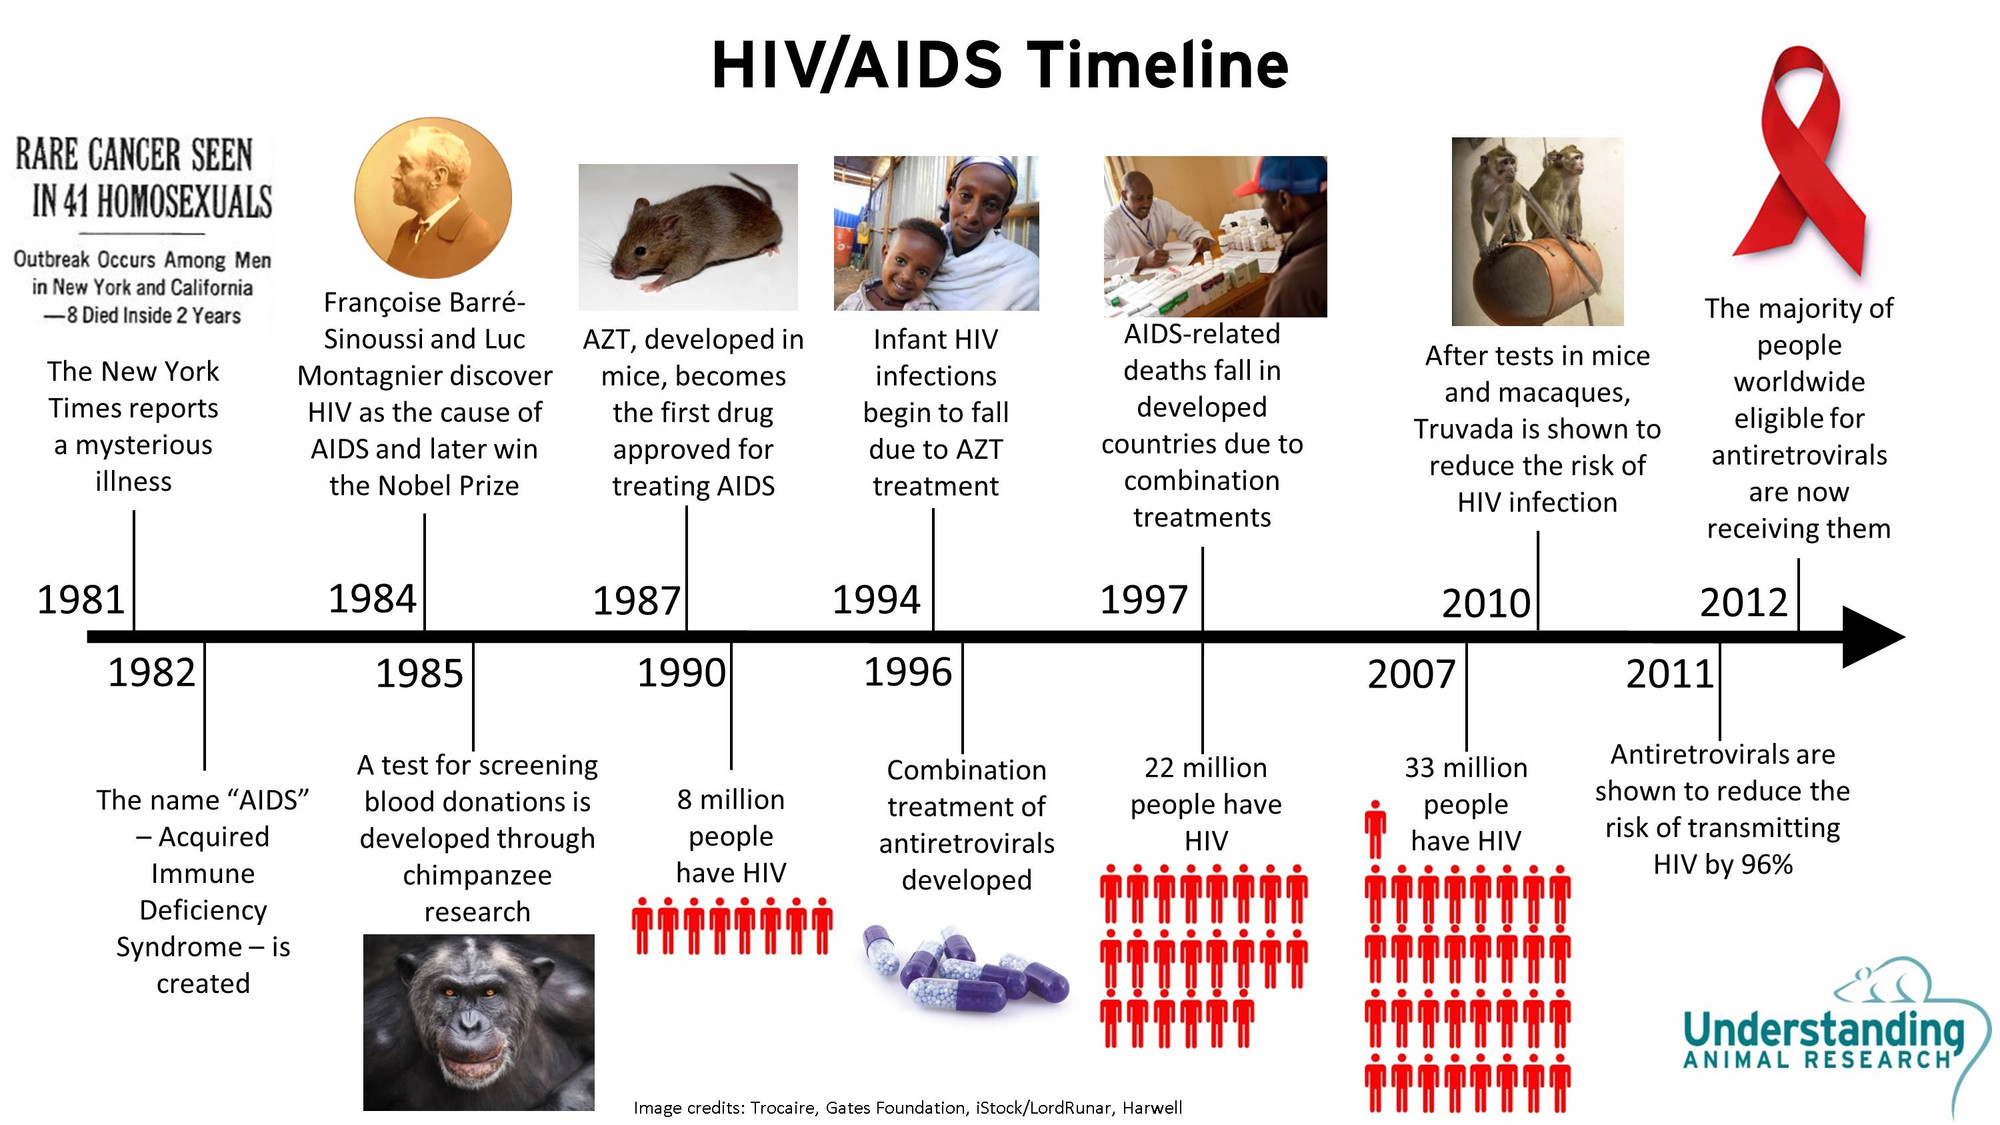 HIV/AIDS in the United States